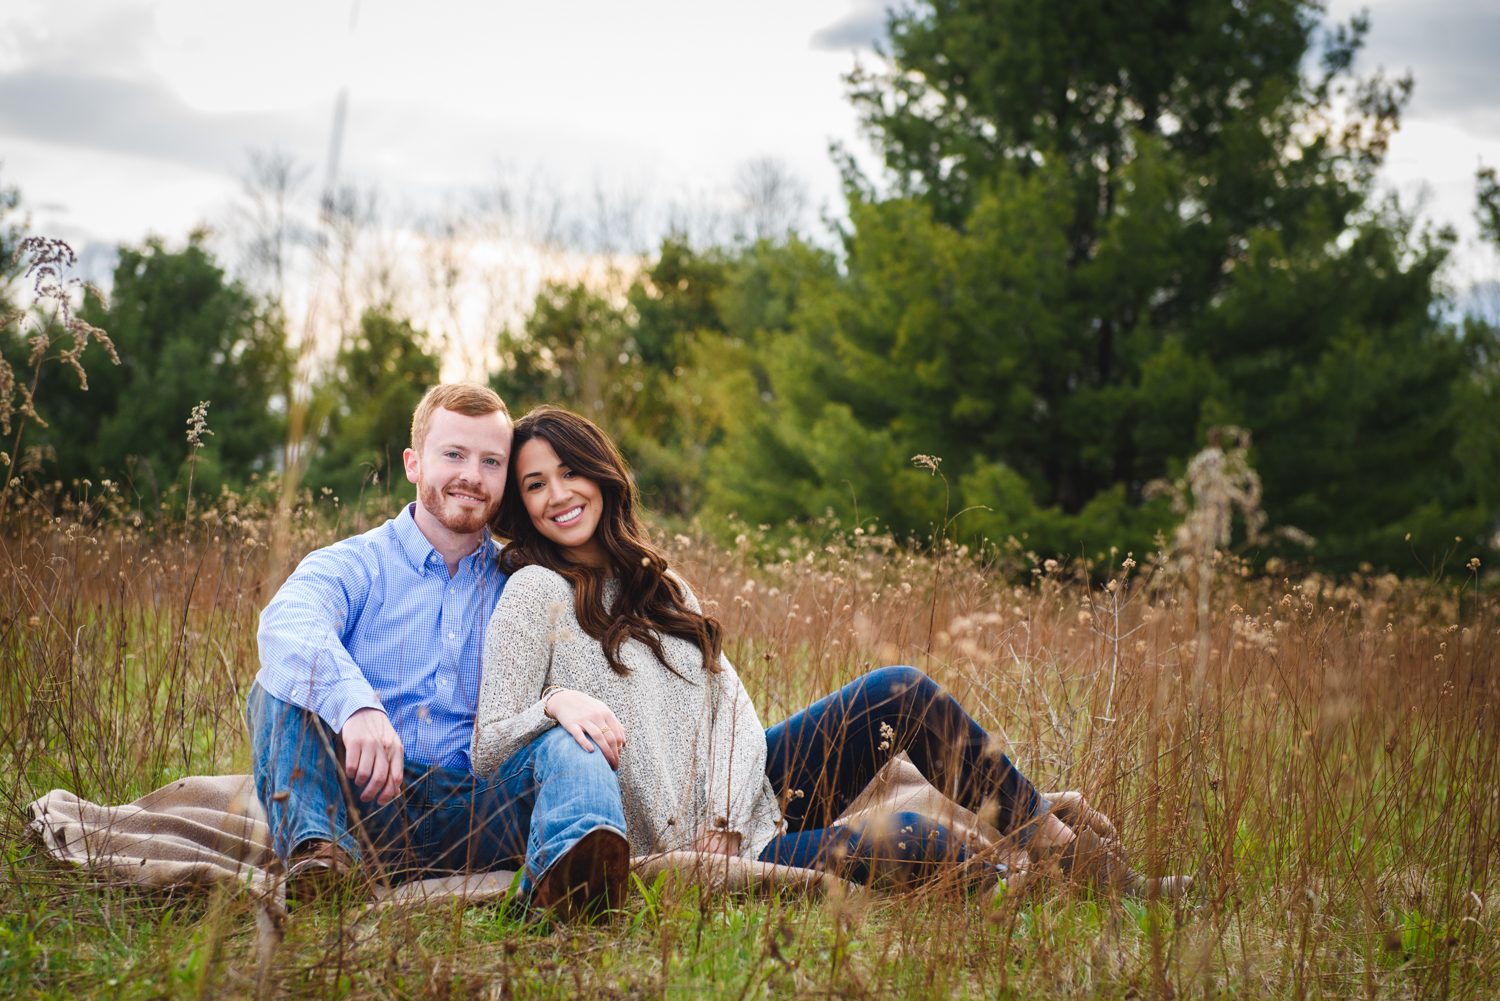 Sweet Engagement 0295-Edit.jpg